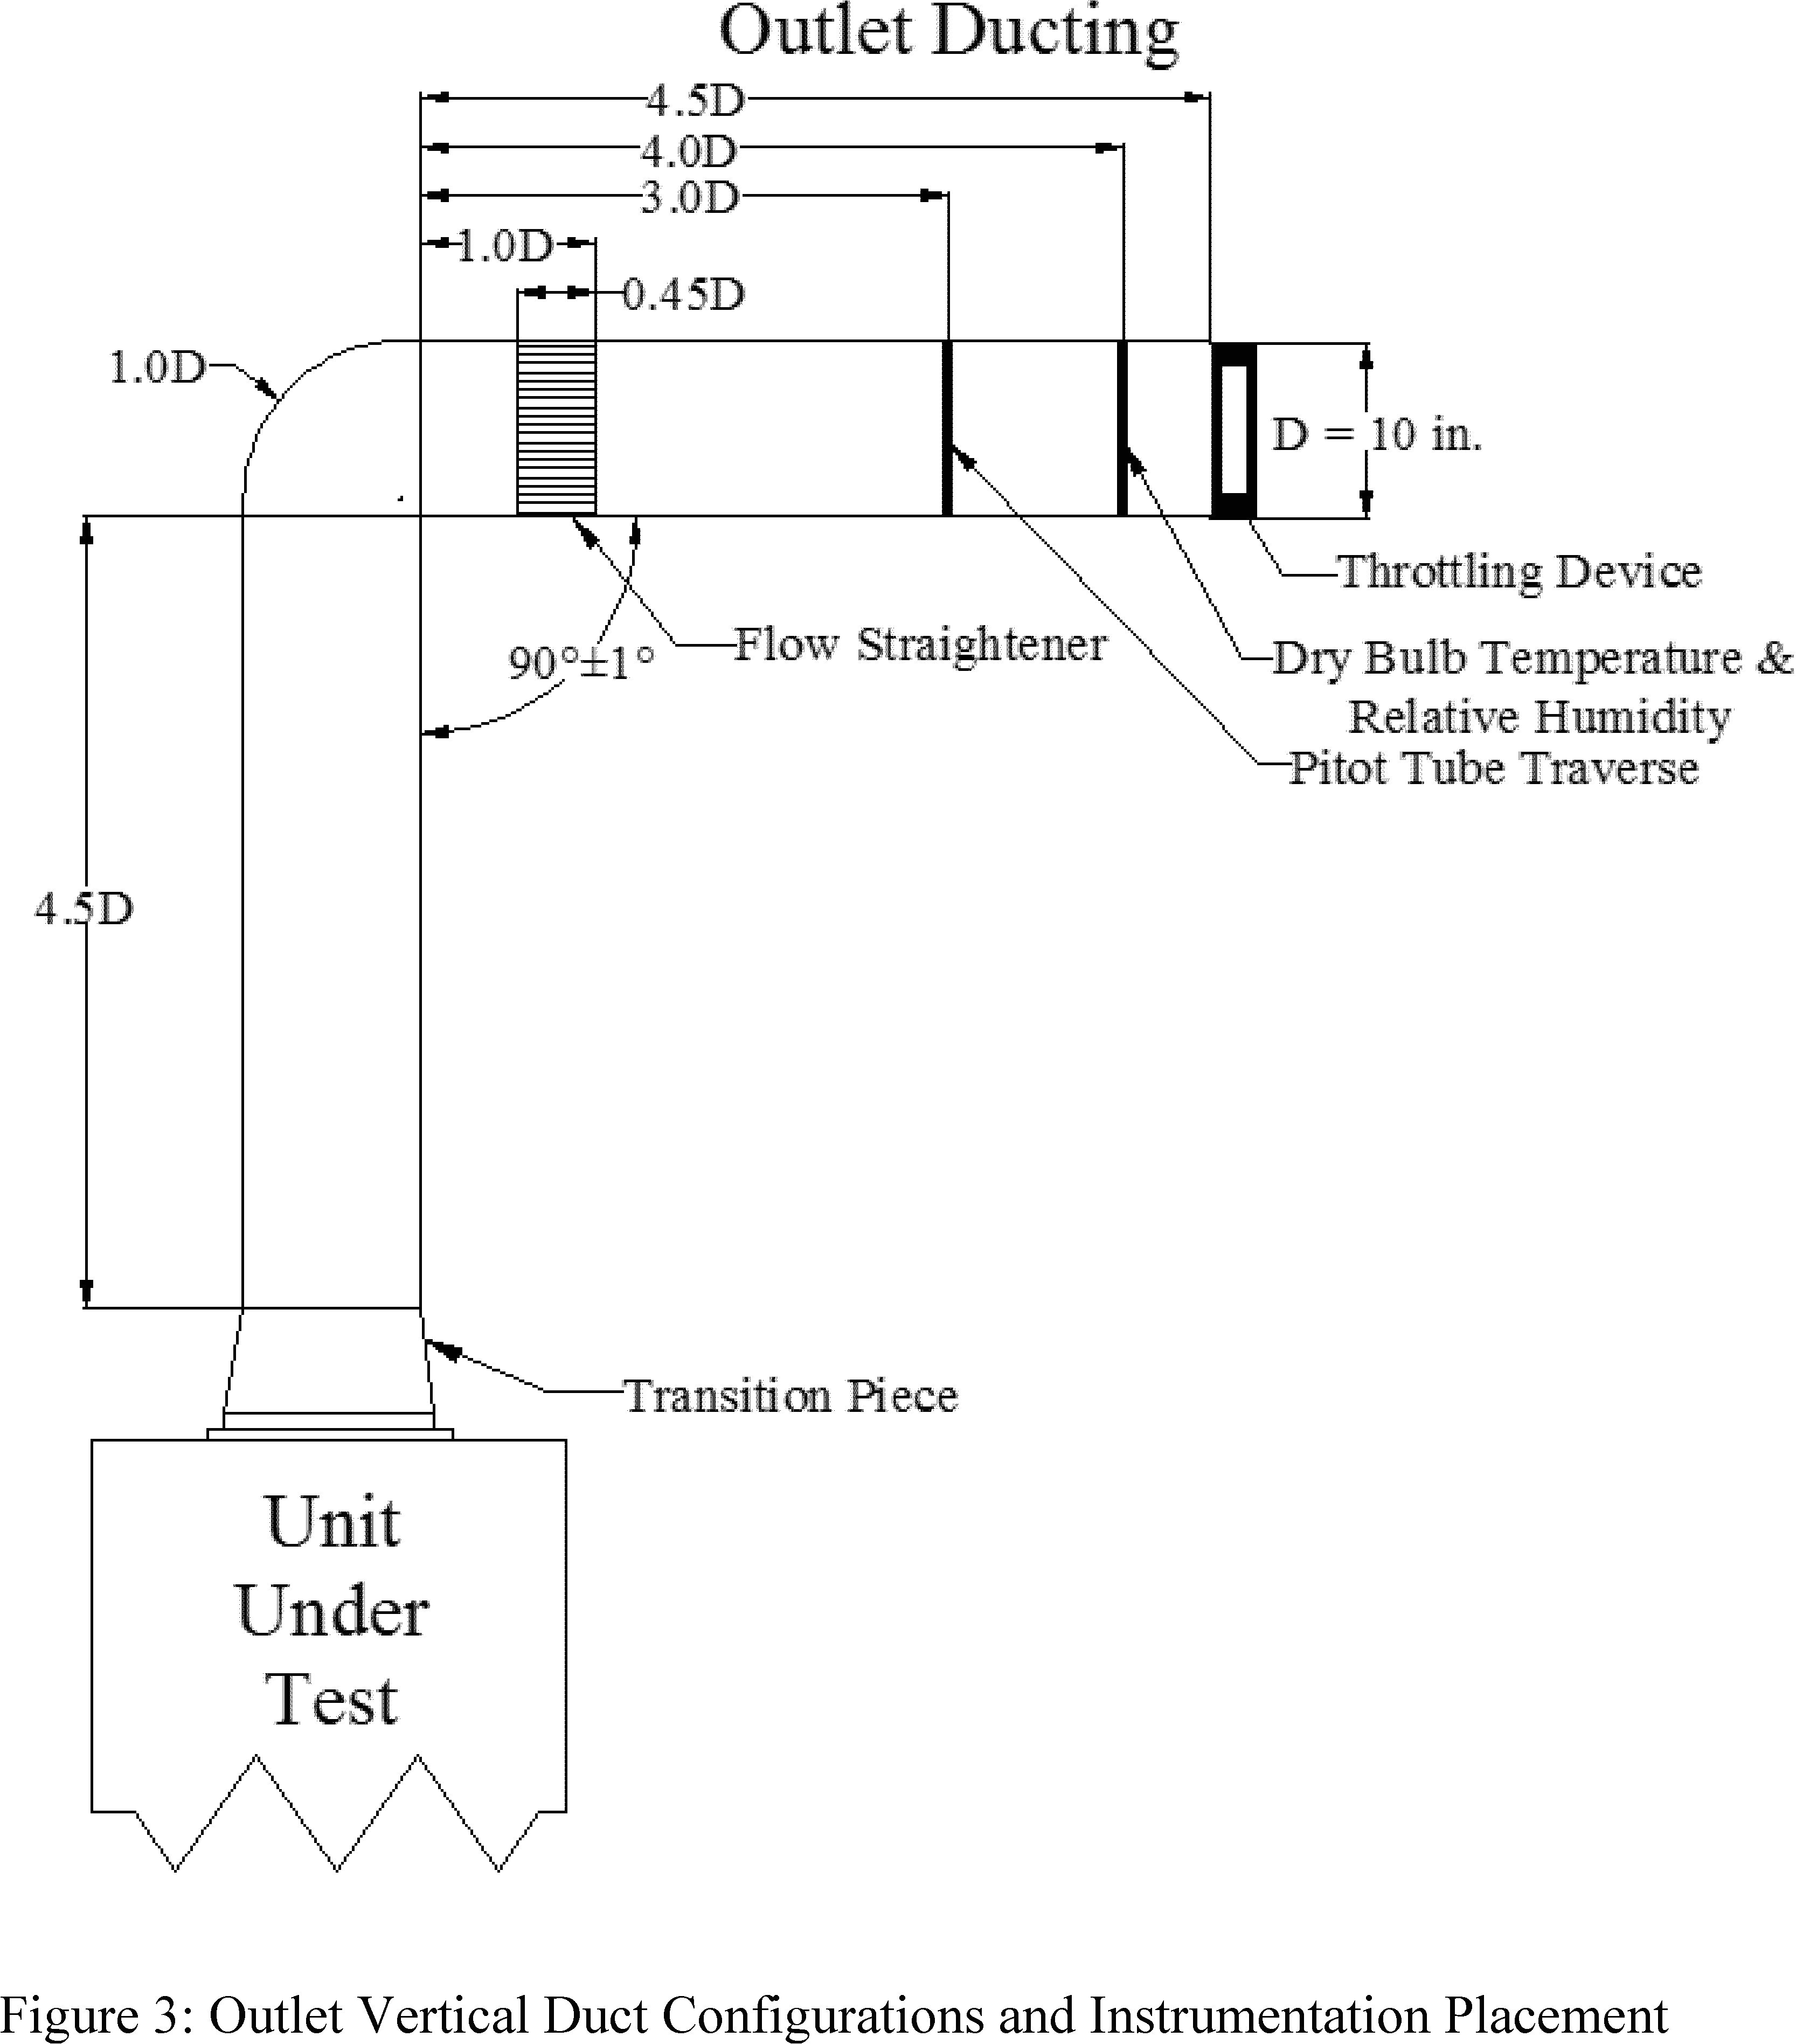 quad wiring diagram beautiful wiring diagram for quad receptacle amp a quad receptacle outlet wiring jpg